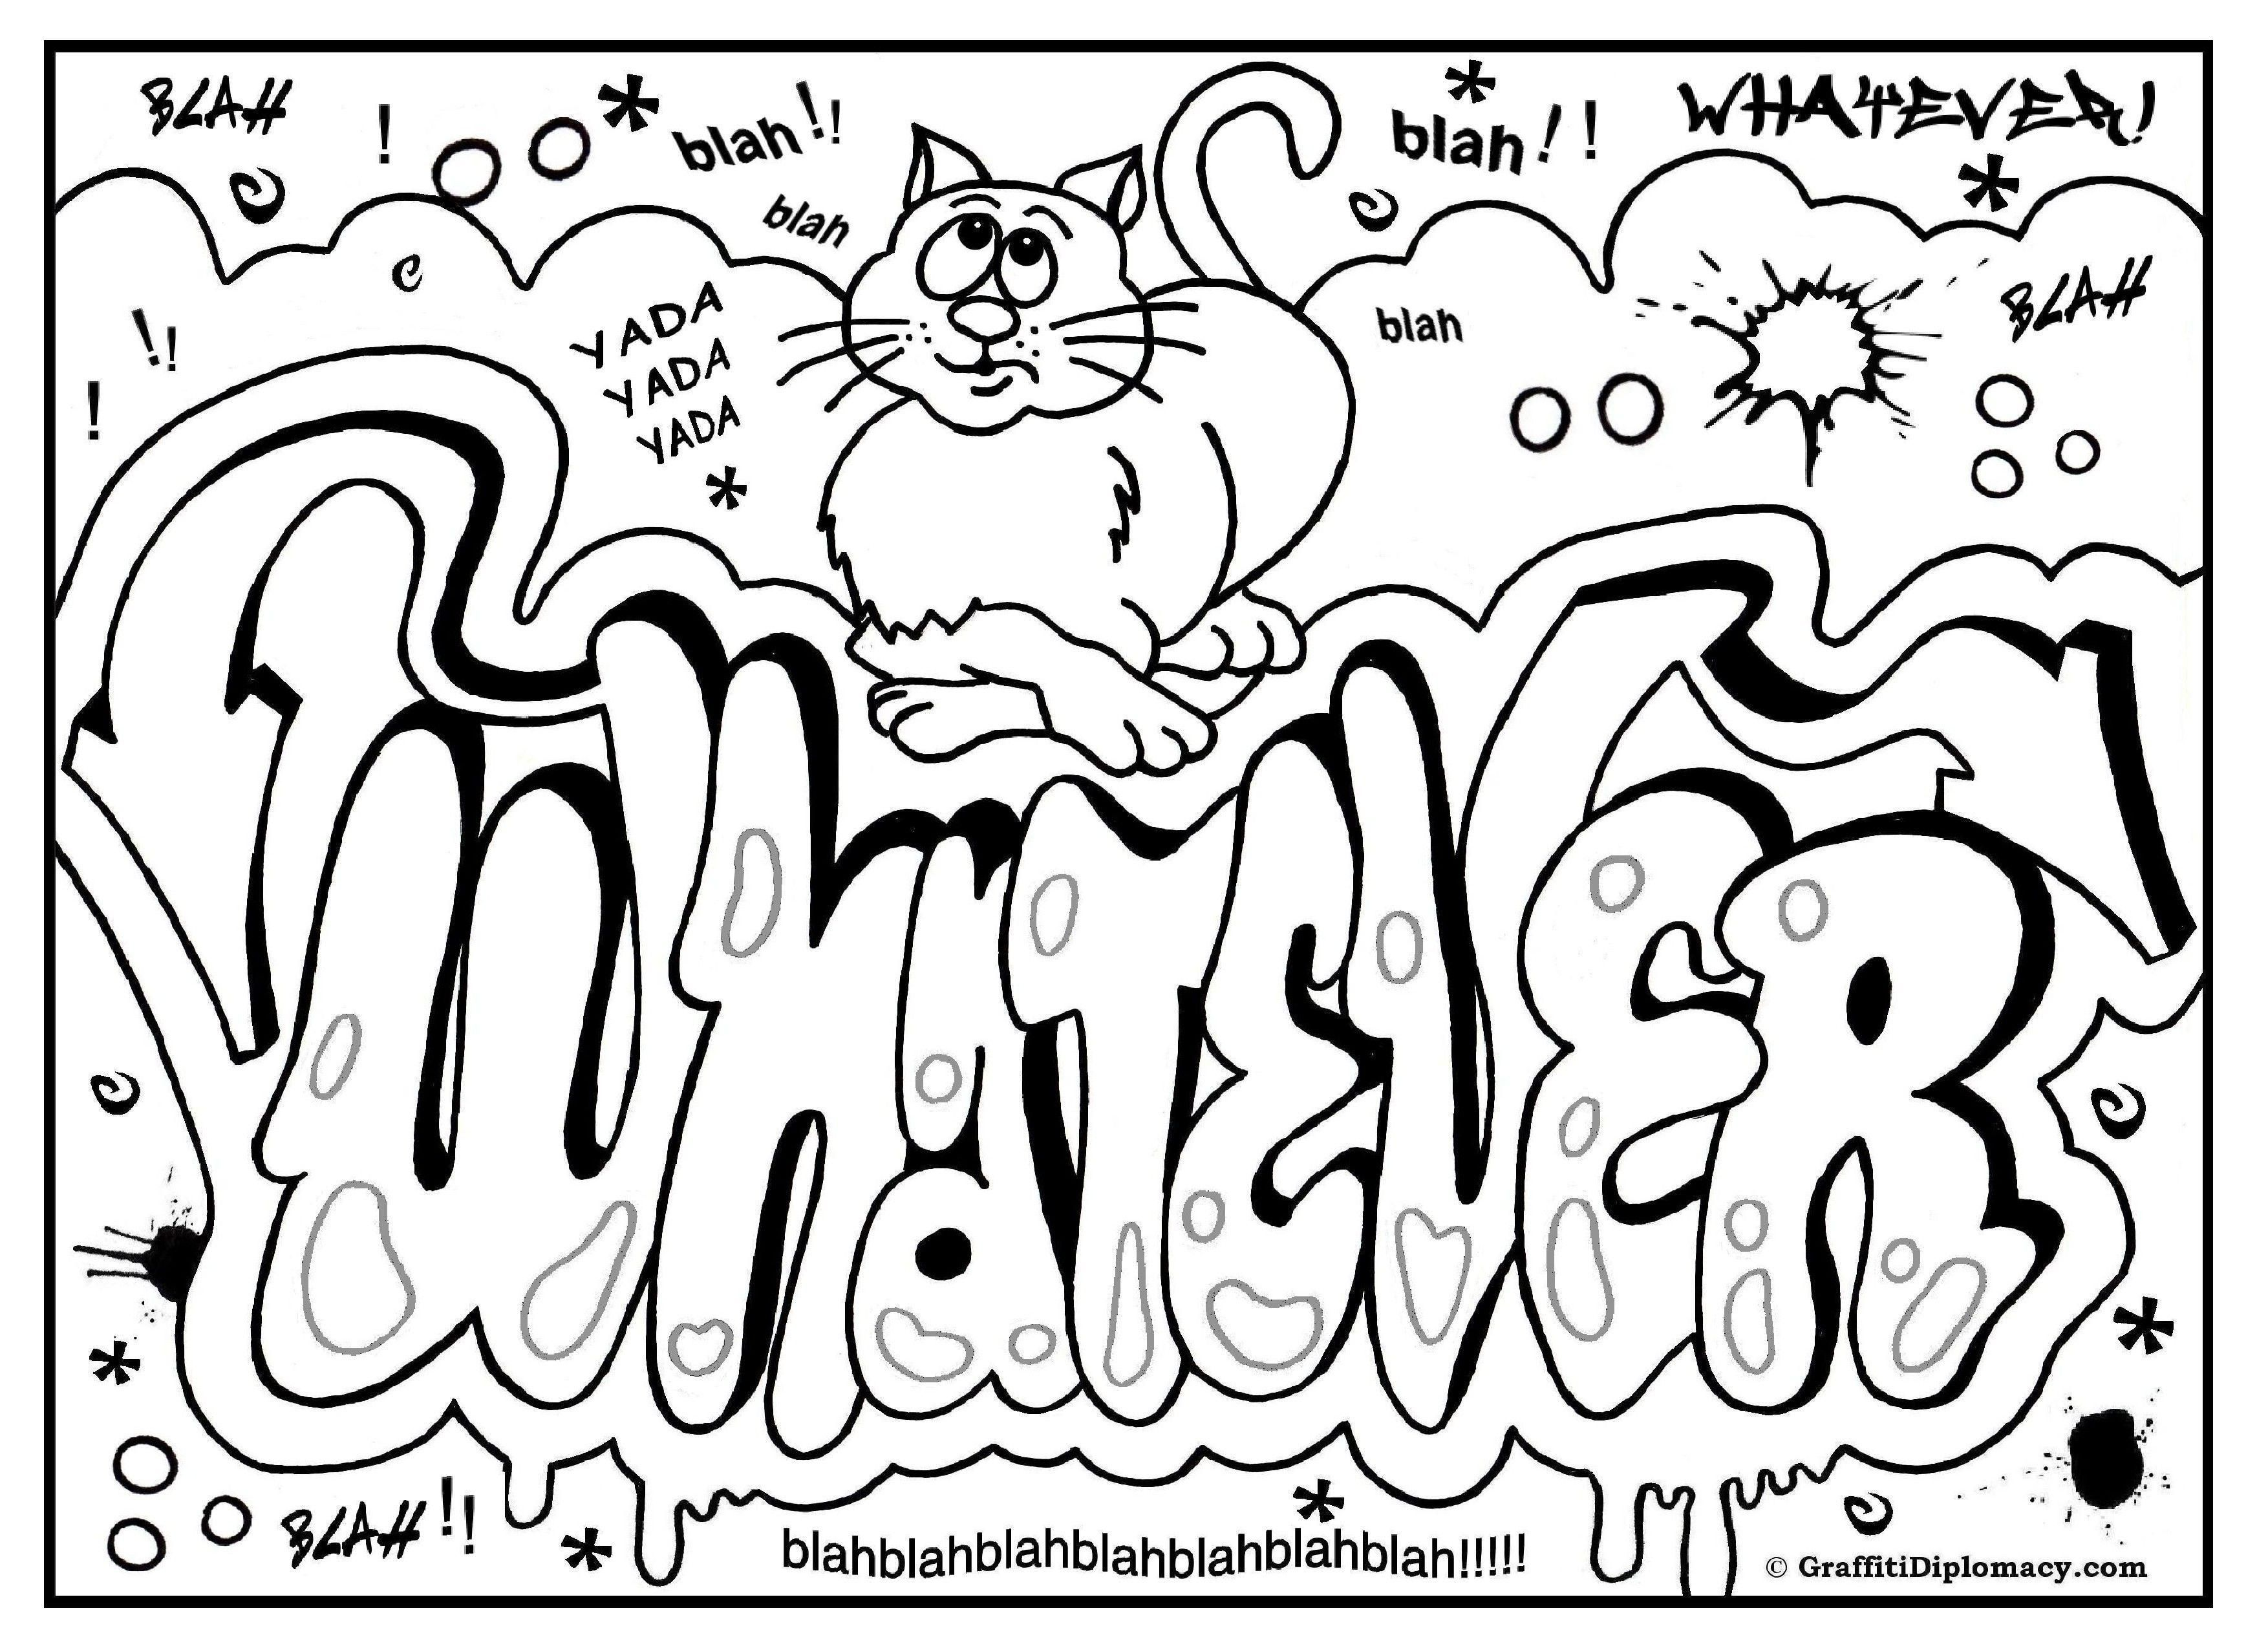 18 Childrens Colouring Pages To Print Words Coloring Book Swear Word Coloring Book Coloring Pages Inspirational